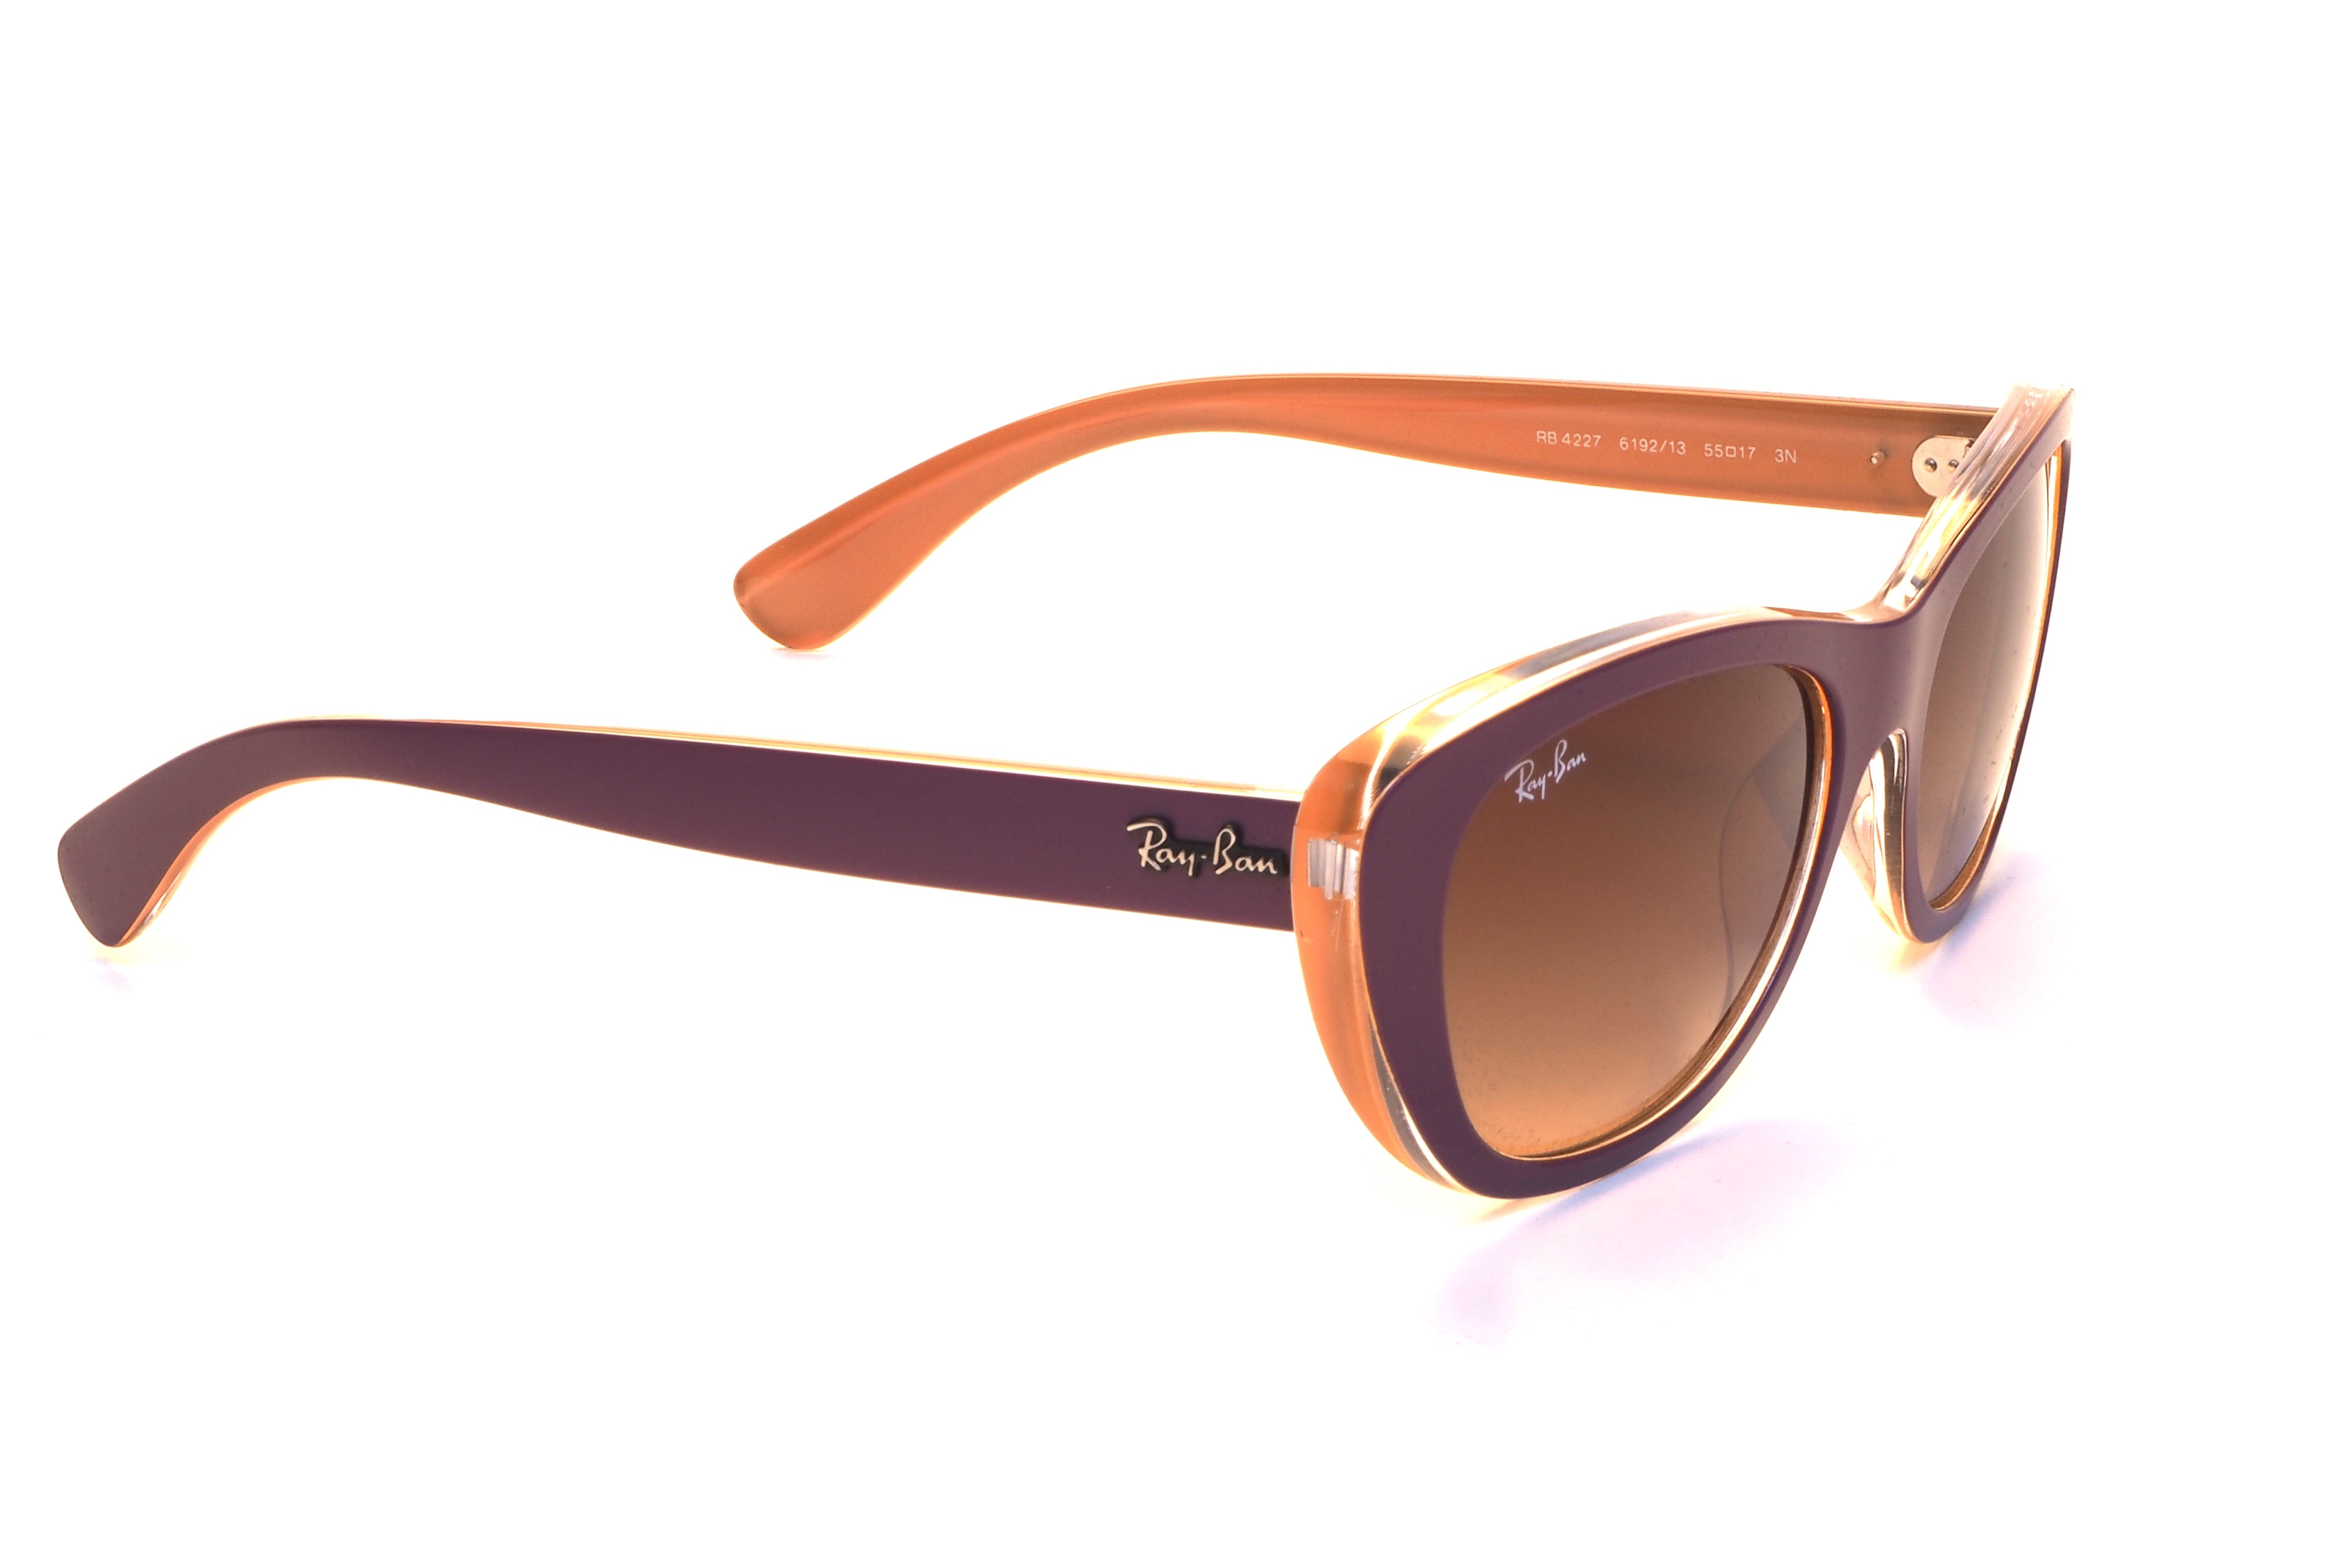 ray ban sunglasses for sale uk